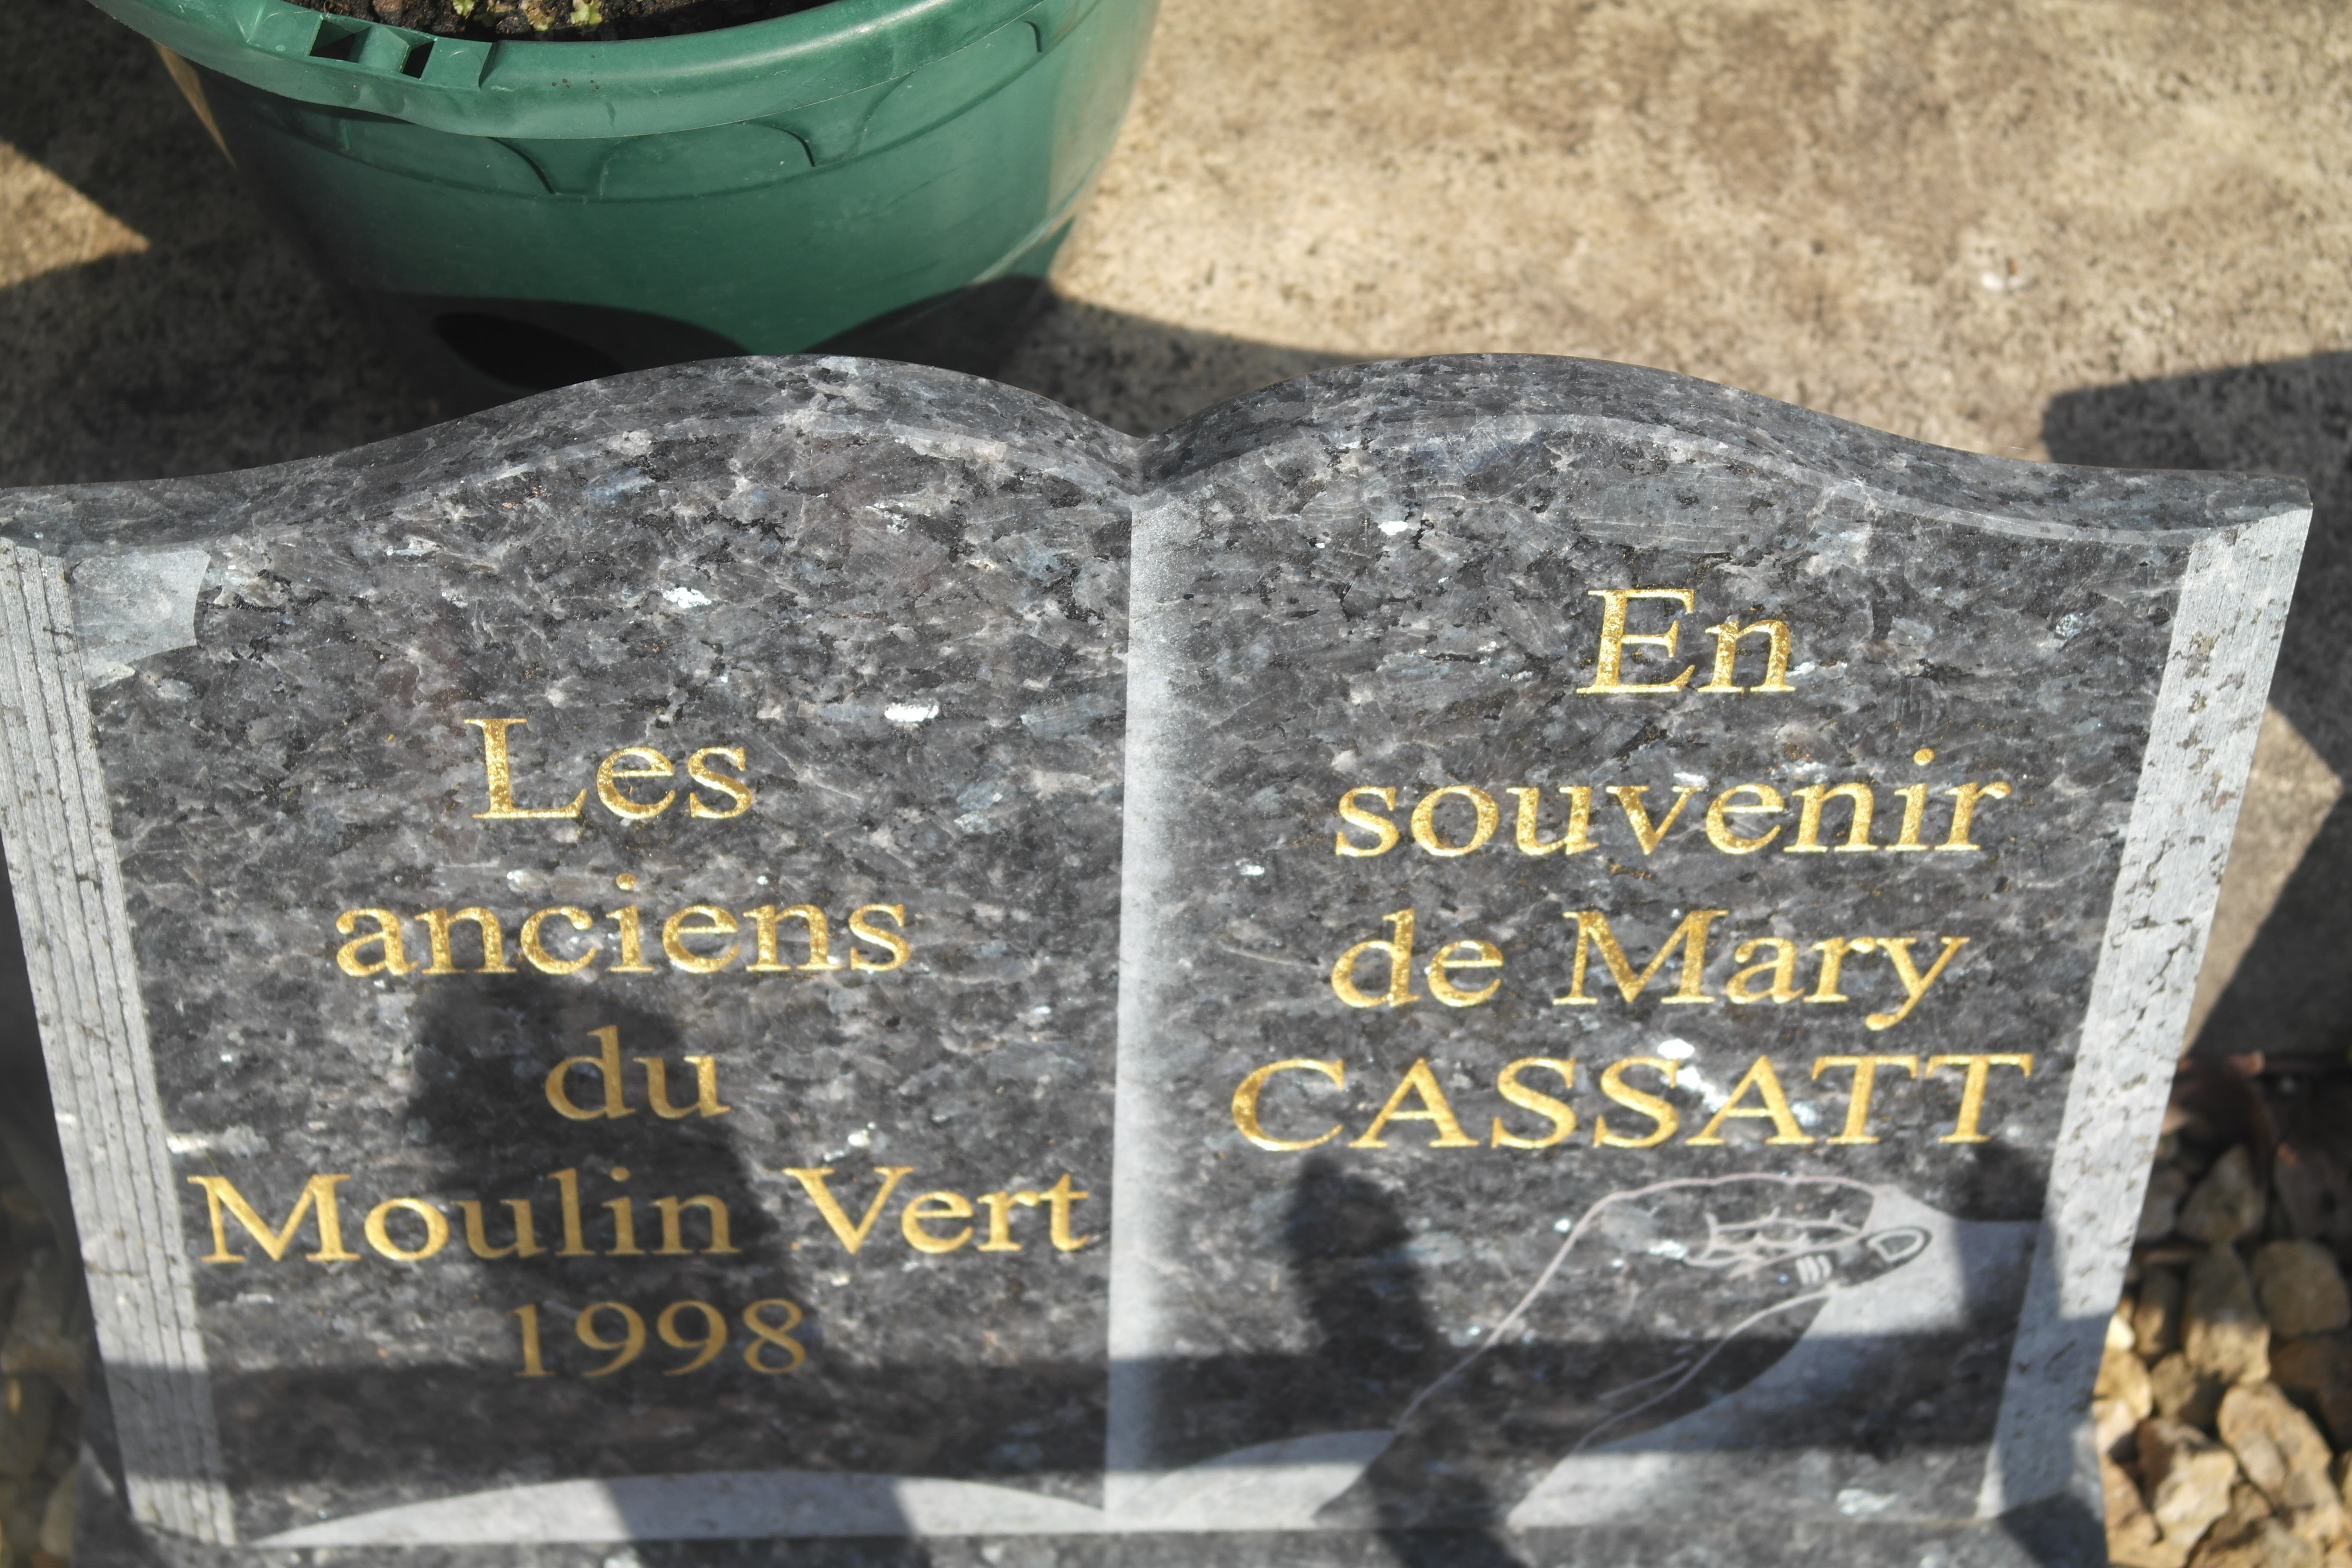 Locals donated this plaque to remember Mary Cassatt and her contribution to the community